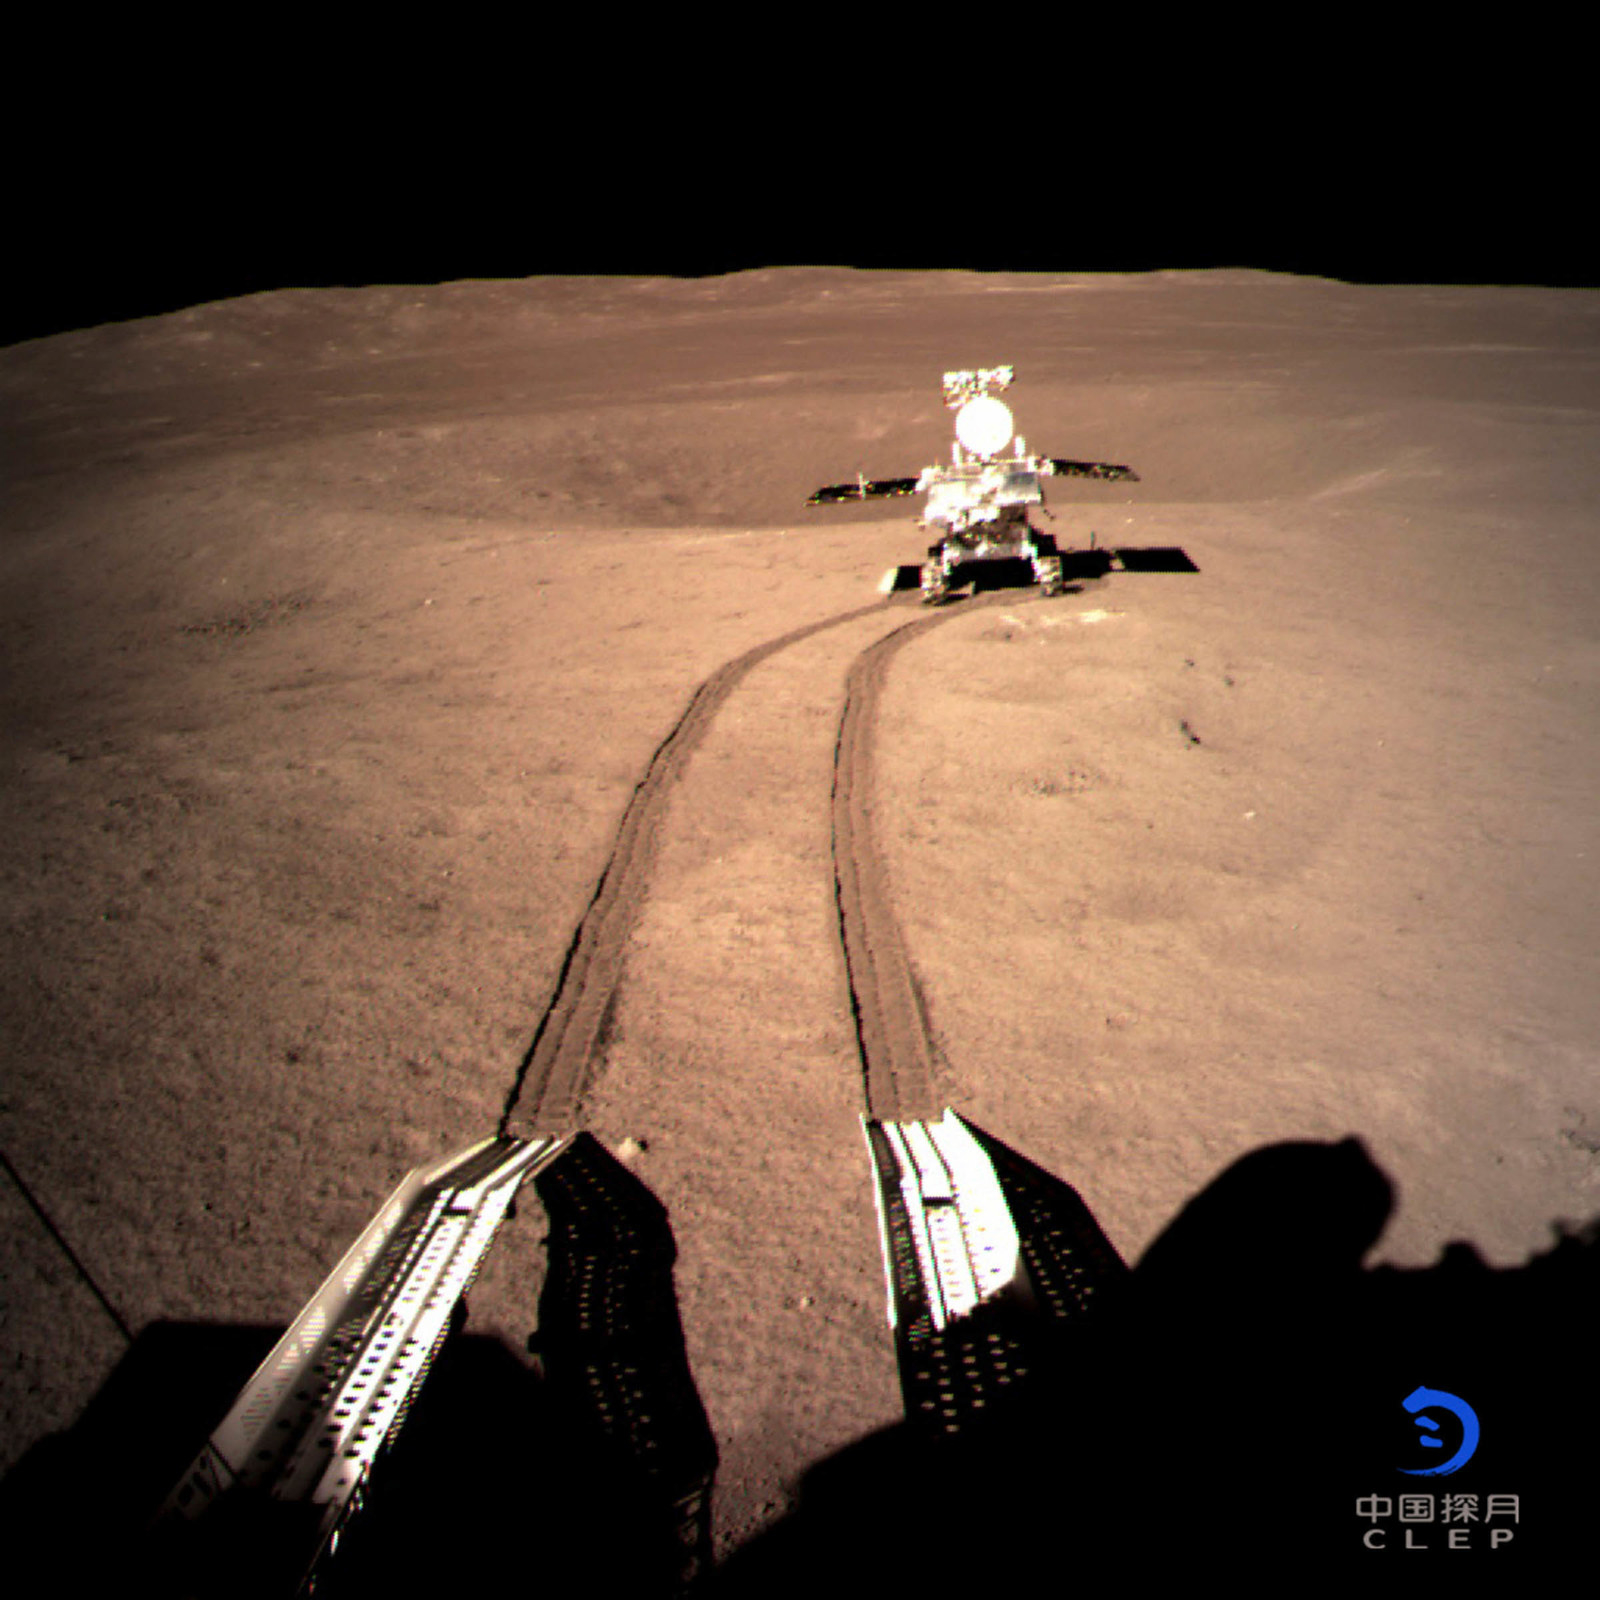 2019 In this photo provided by the China National Space Administration via Xinhua News Agency, Yutu-2, China's lunar rover, leaves wheel marks after leaving the lander that touched down on the surface of the far side of the moon. China's space agency says that all systems are go for its spacecraft and rover, which have made a pioneering landing on the far side of the moon.